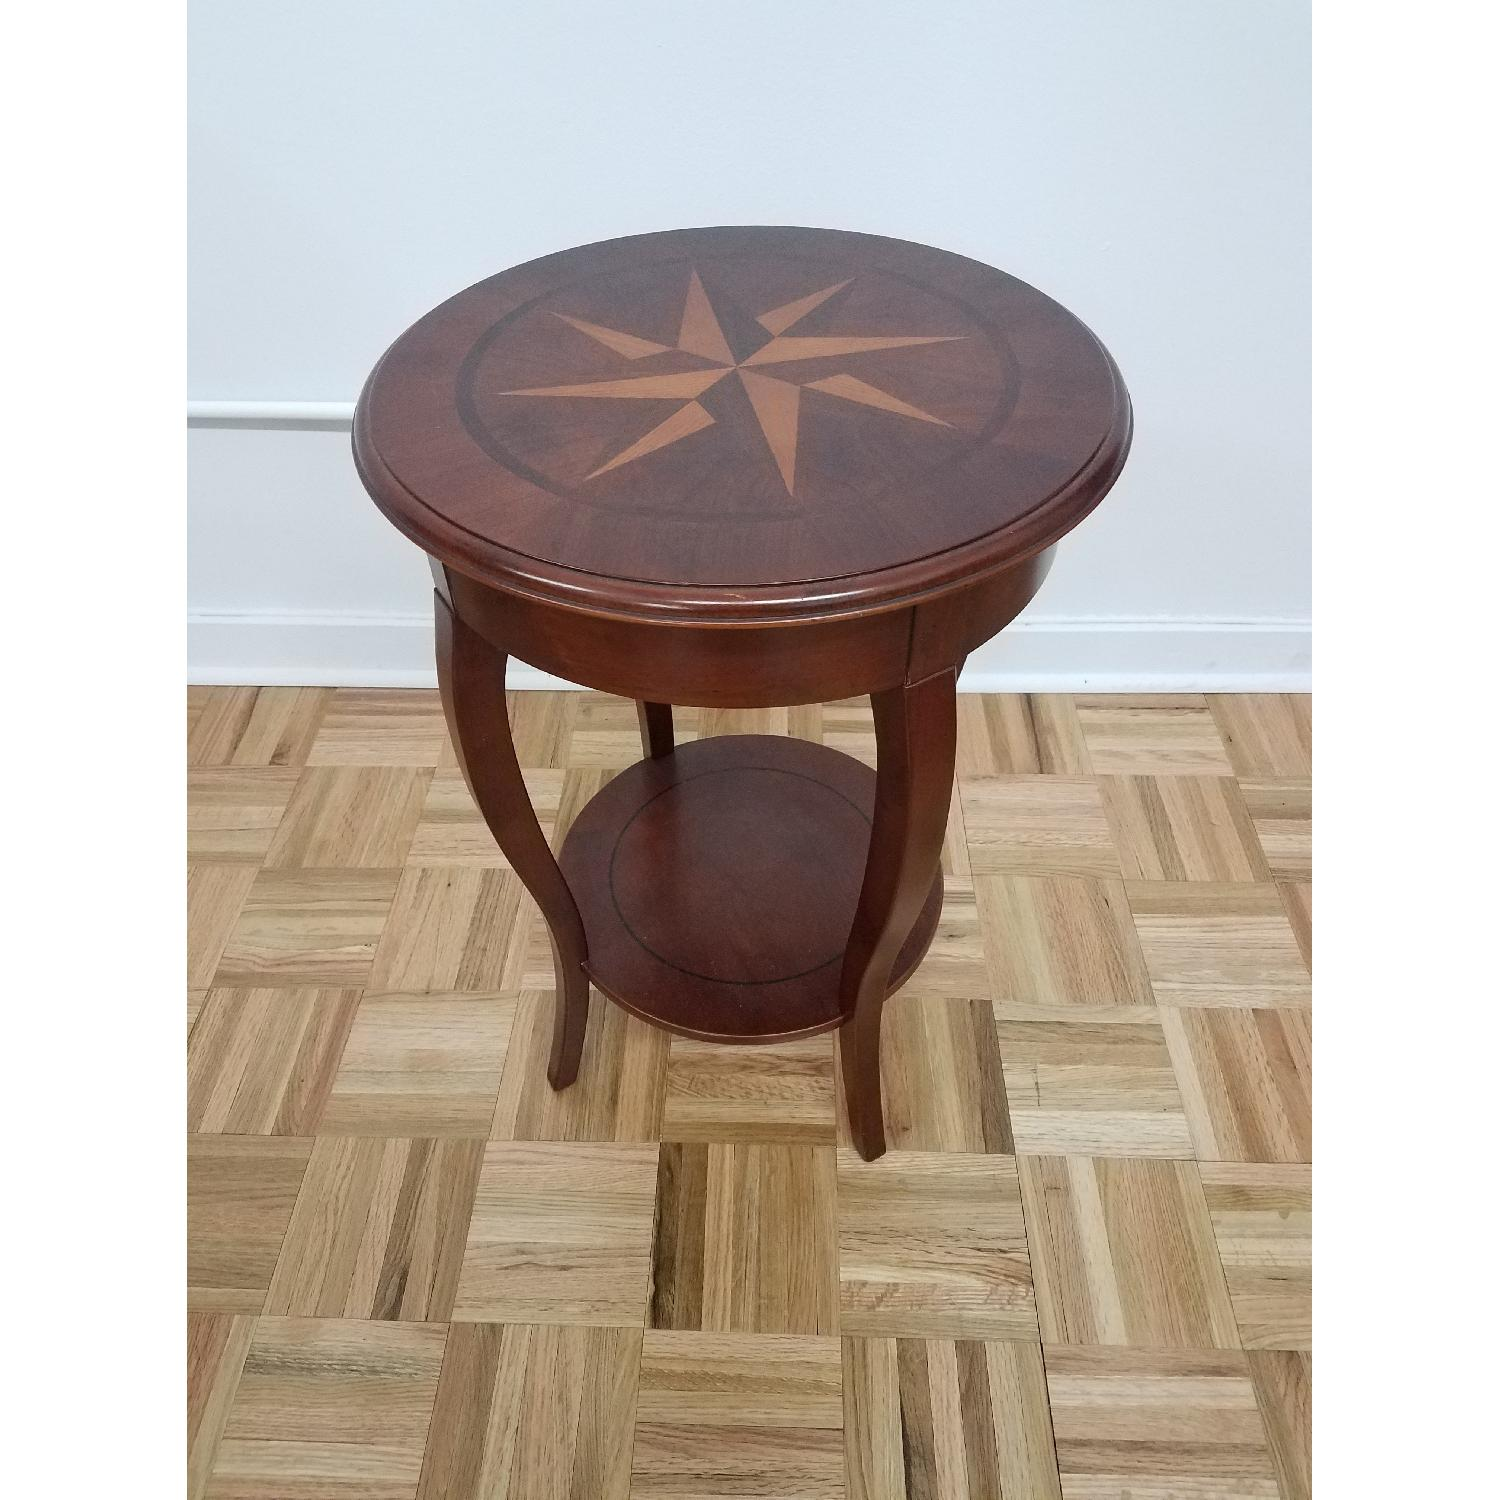 The Bombay Company Compass Side Table-0